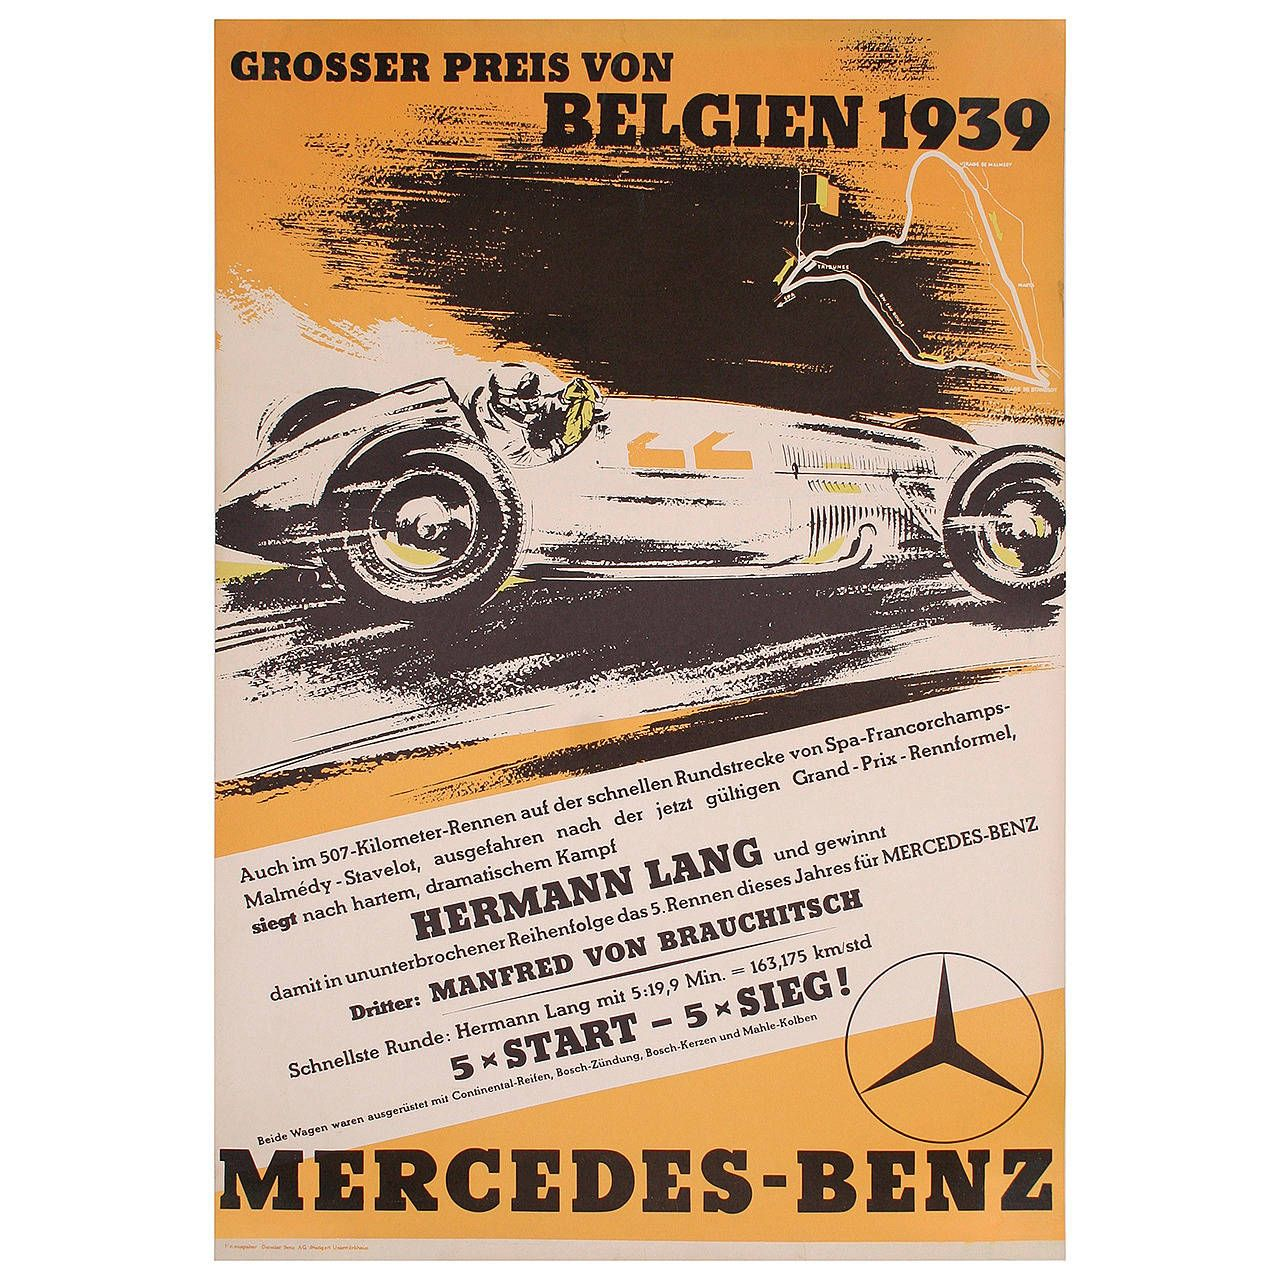 Mercedes Benz Belgian Grand Prix Victory Poster 1939 1stdibs Com Vintage Racing Poster Racing Posters Mercedes